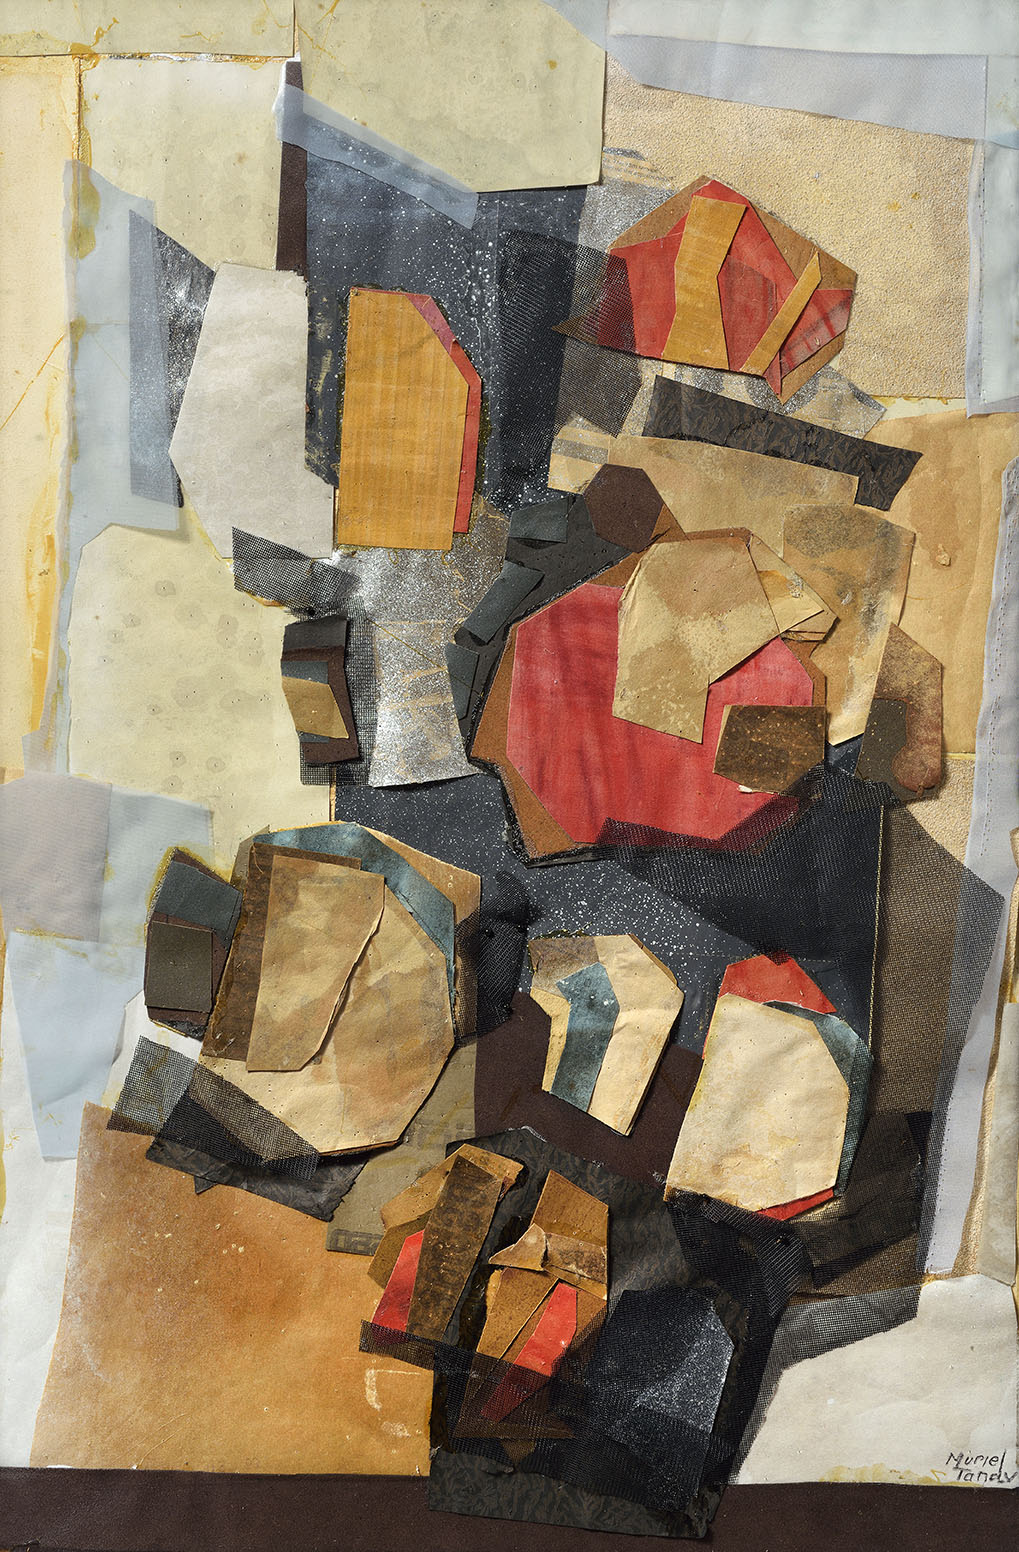 Muriel Tandy    Plant in the Window,  Collage or Papier Collé, 26 ½ x 17 ½ in, Signed  [CAS 27] Acquired in 1973 as No 93